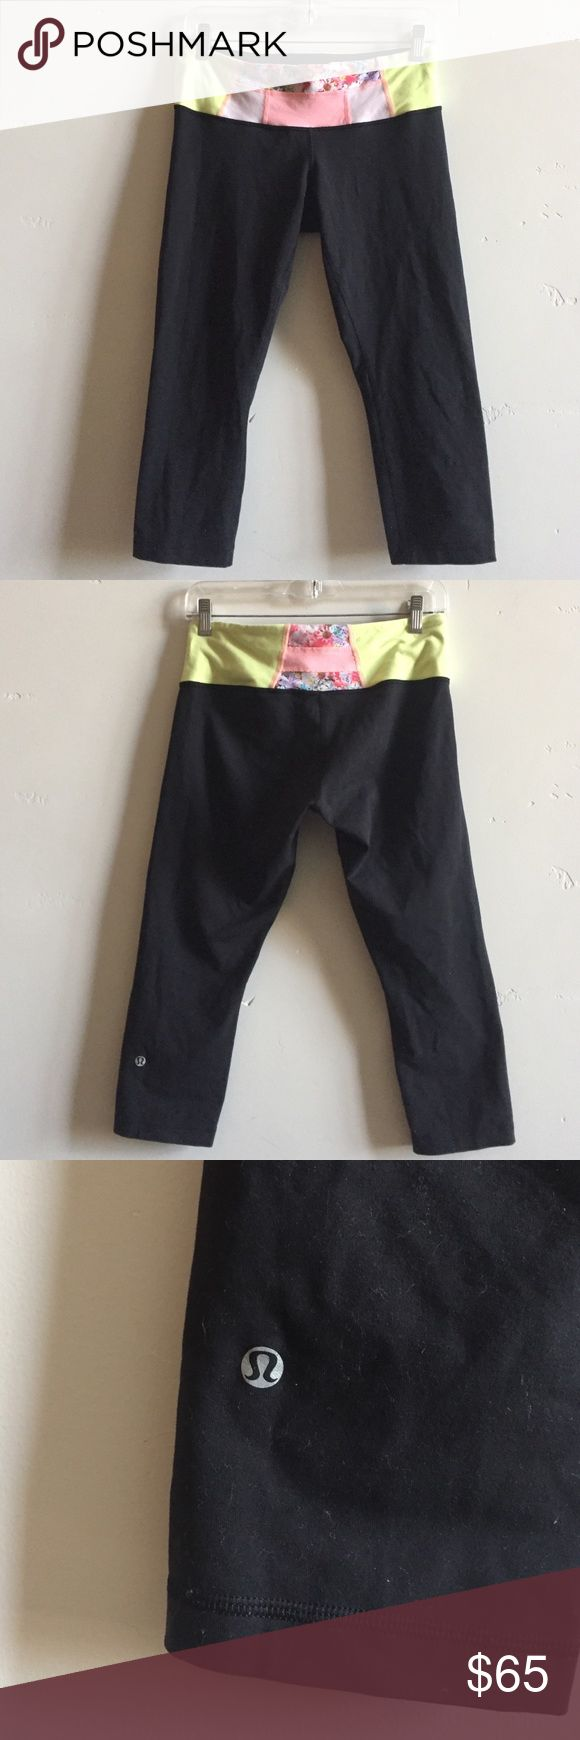 Lululemon Reversible Wunder Under Crops Lululemon reversible Wunder Under black crops.  One side is all black and the other is black with a pink/ yellow floral band. Very light pilling in crotch area on floral band side.  Never worn on all black side (rip tag is still attached). In excellent condition. lululemon athletica Pants Ankle & Cropped